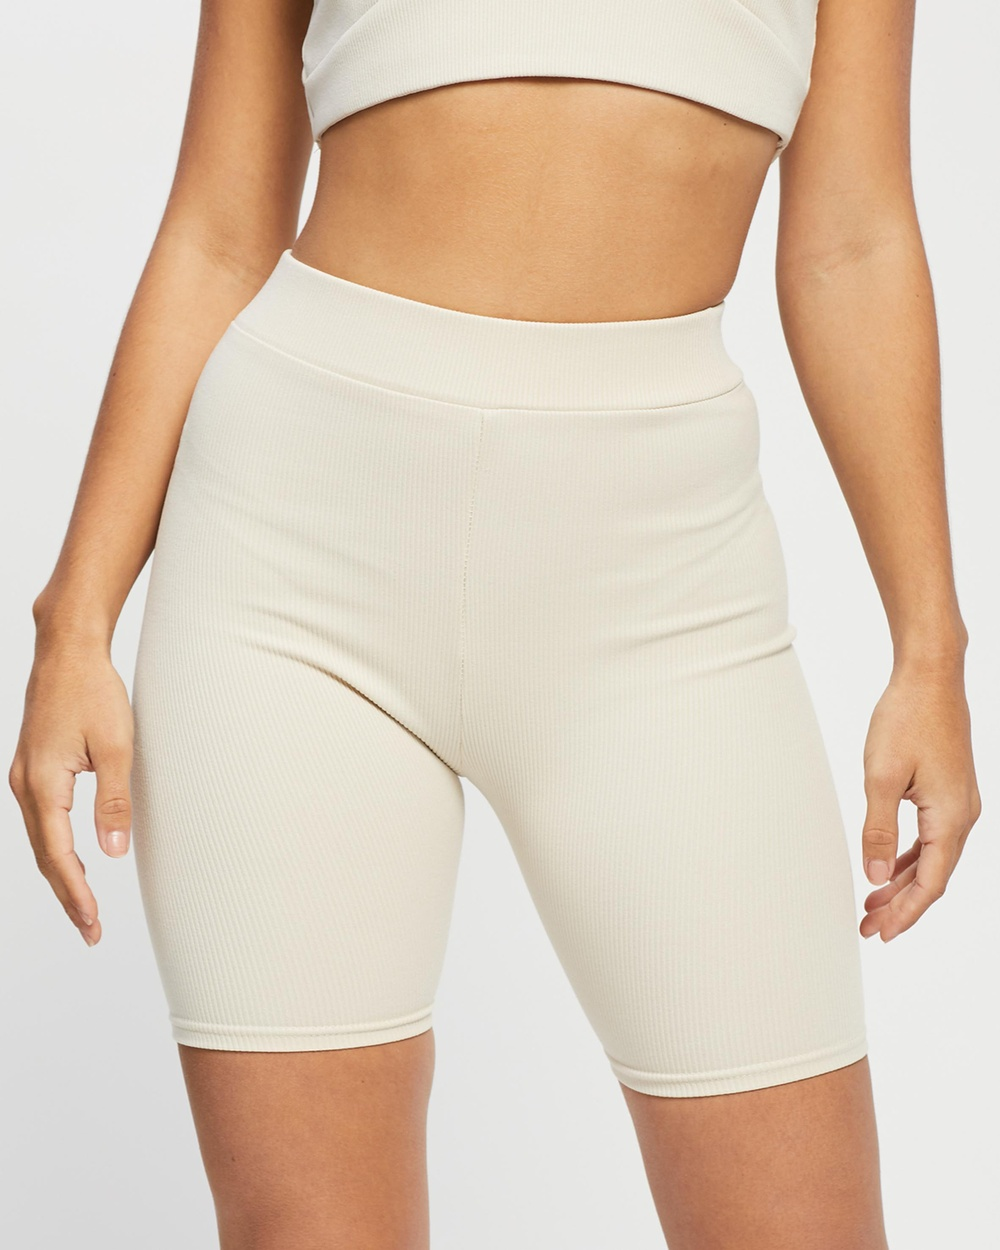 4th & Reckless Ayres Cycling Shorts High-Waisted Beige